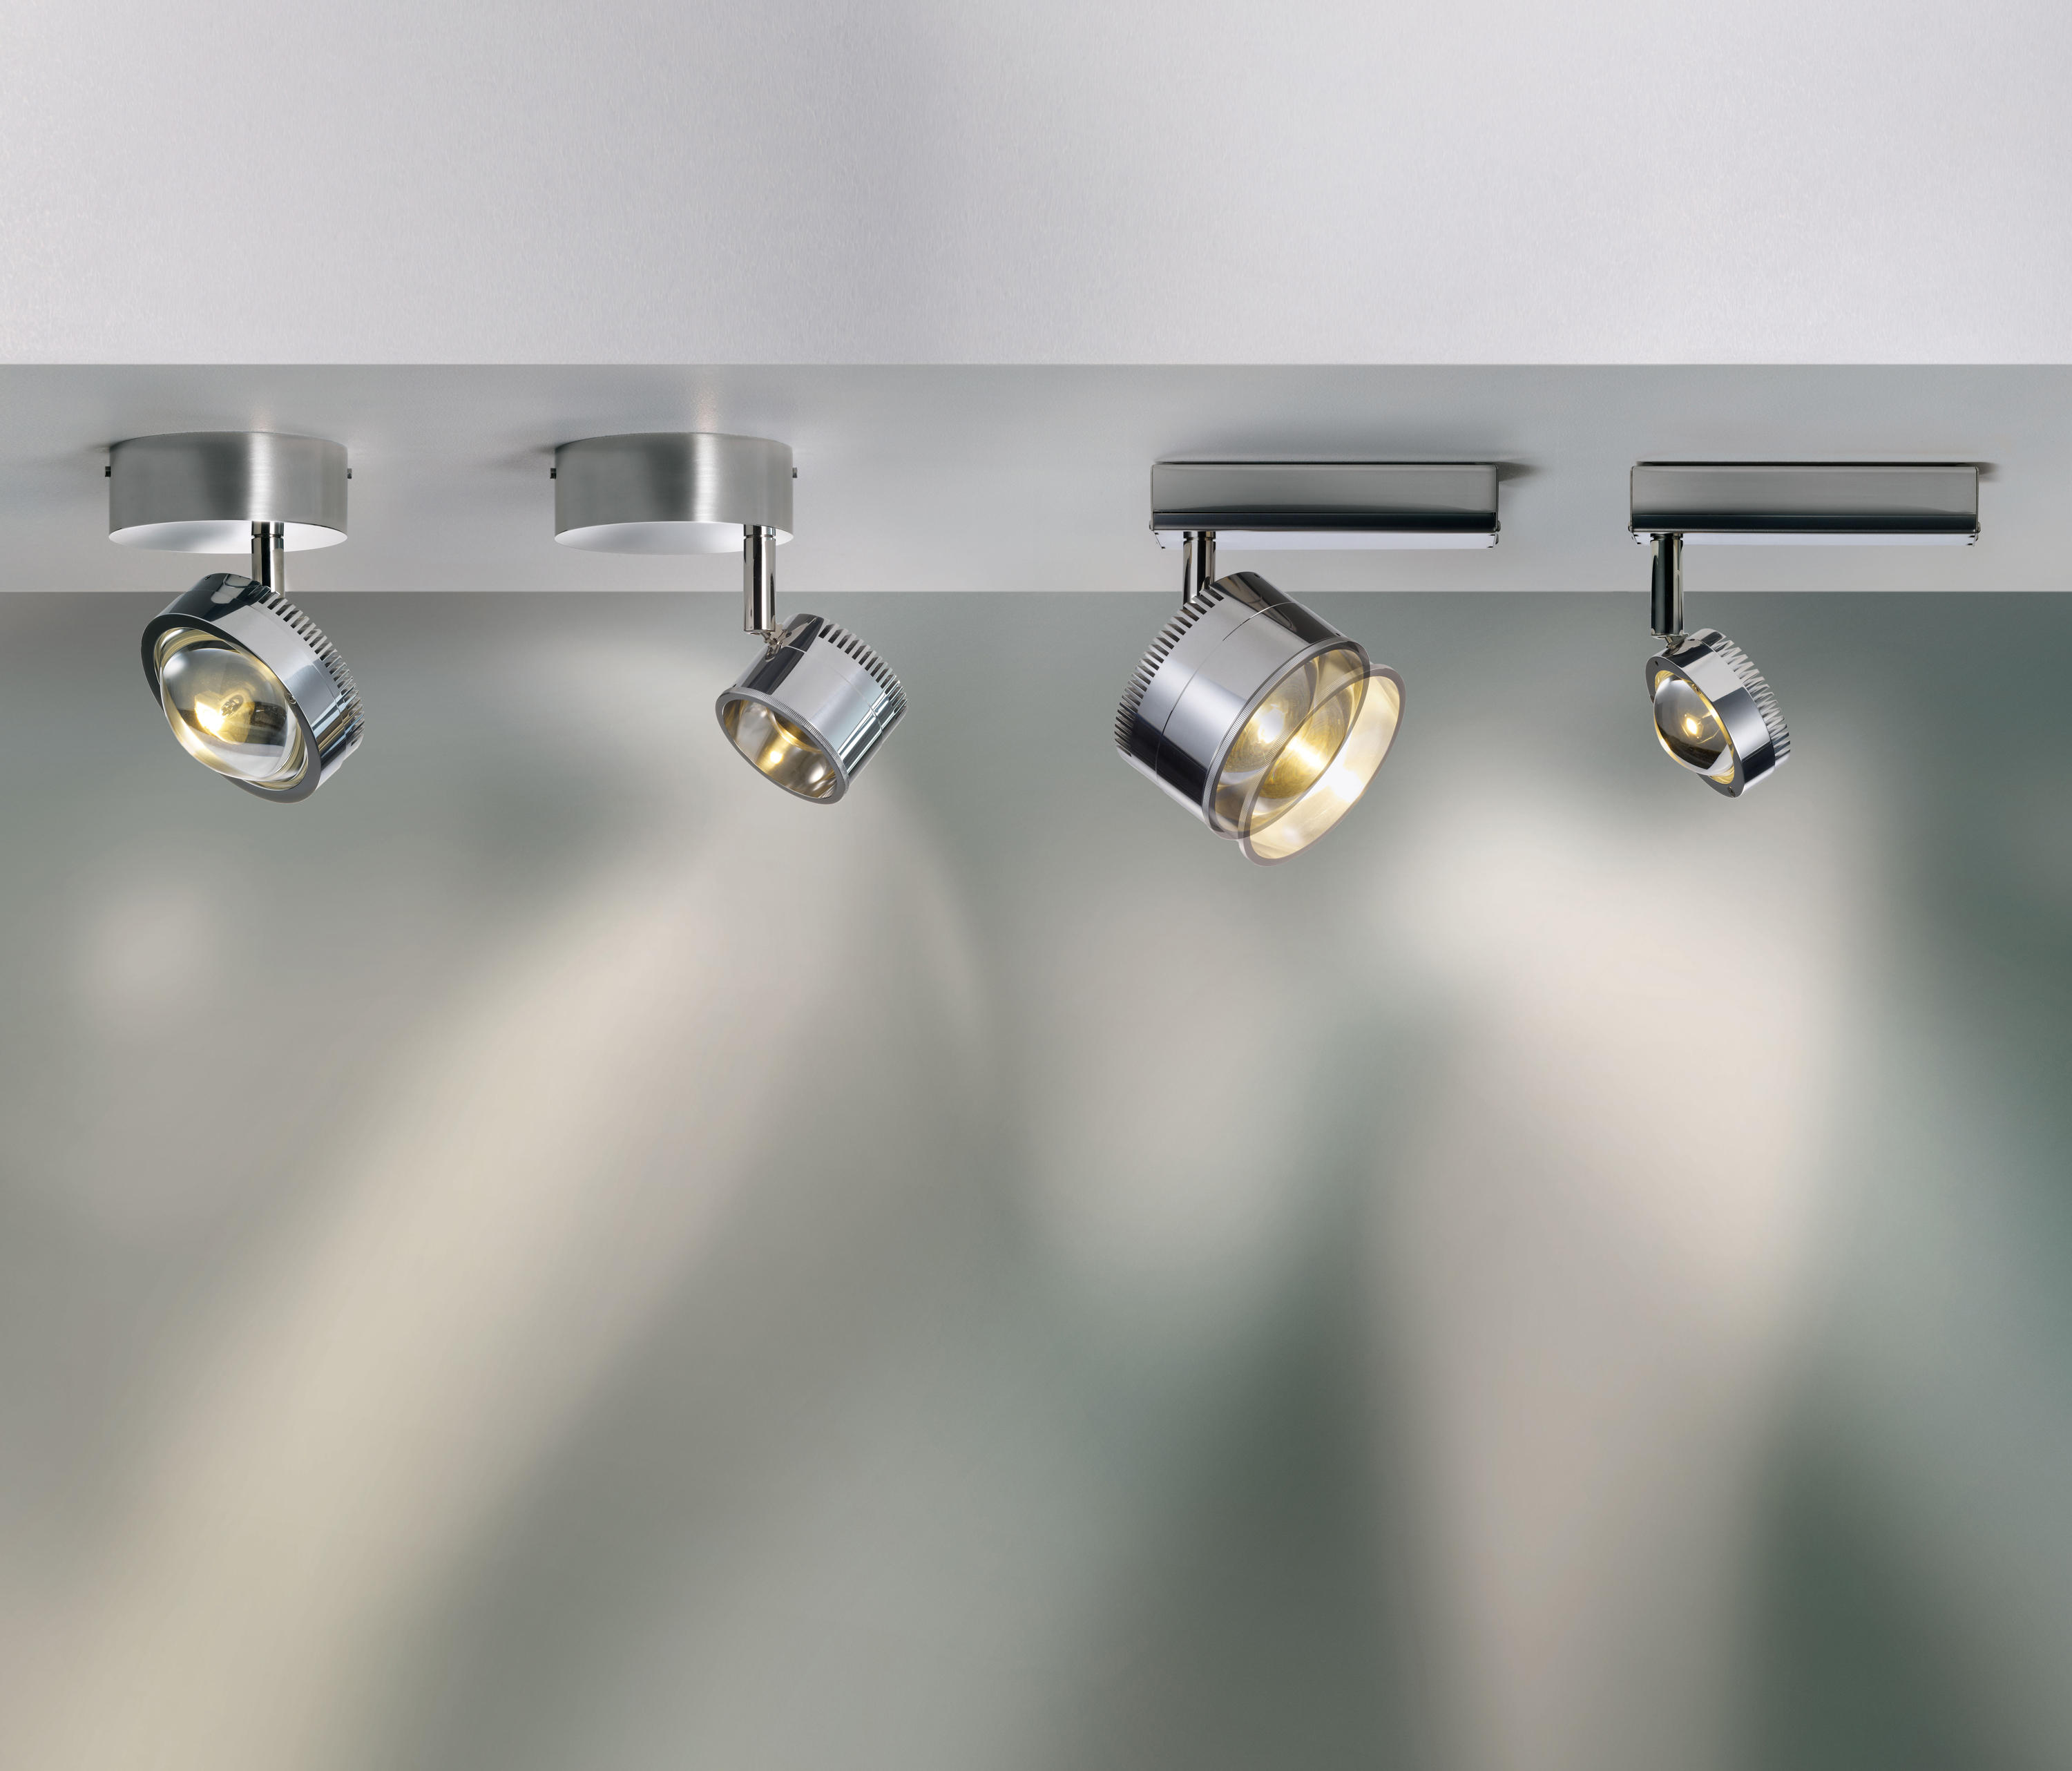 OCULAR SPOT 1 LED S 100 02 - Ceiling lights in stainless steel from ...